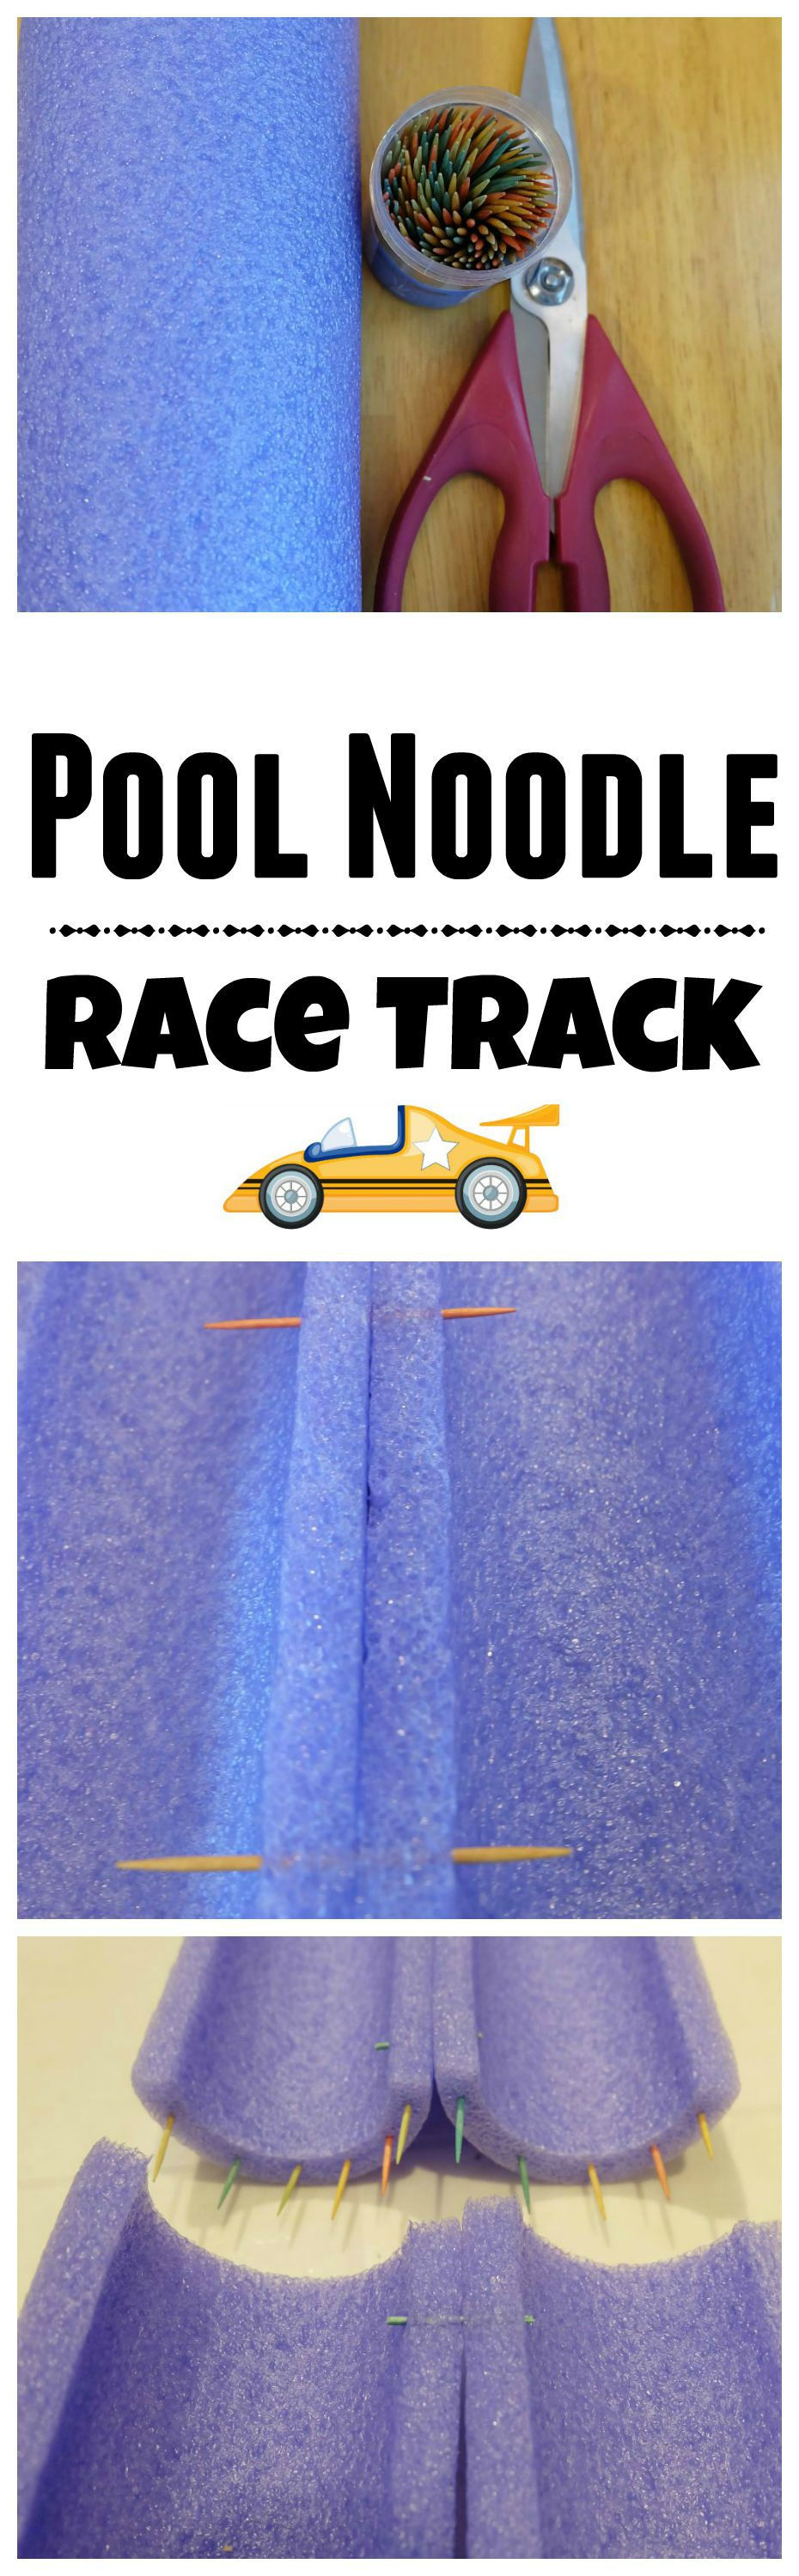 Pool Noodle Race Track